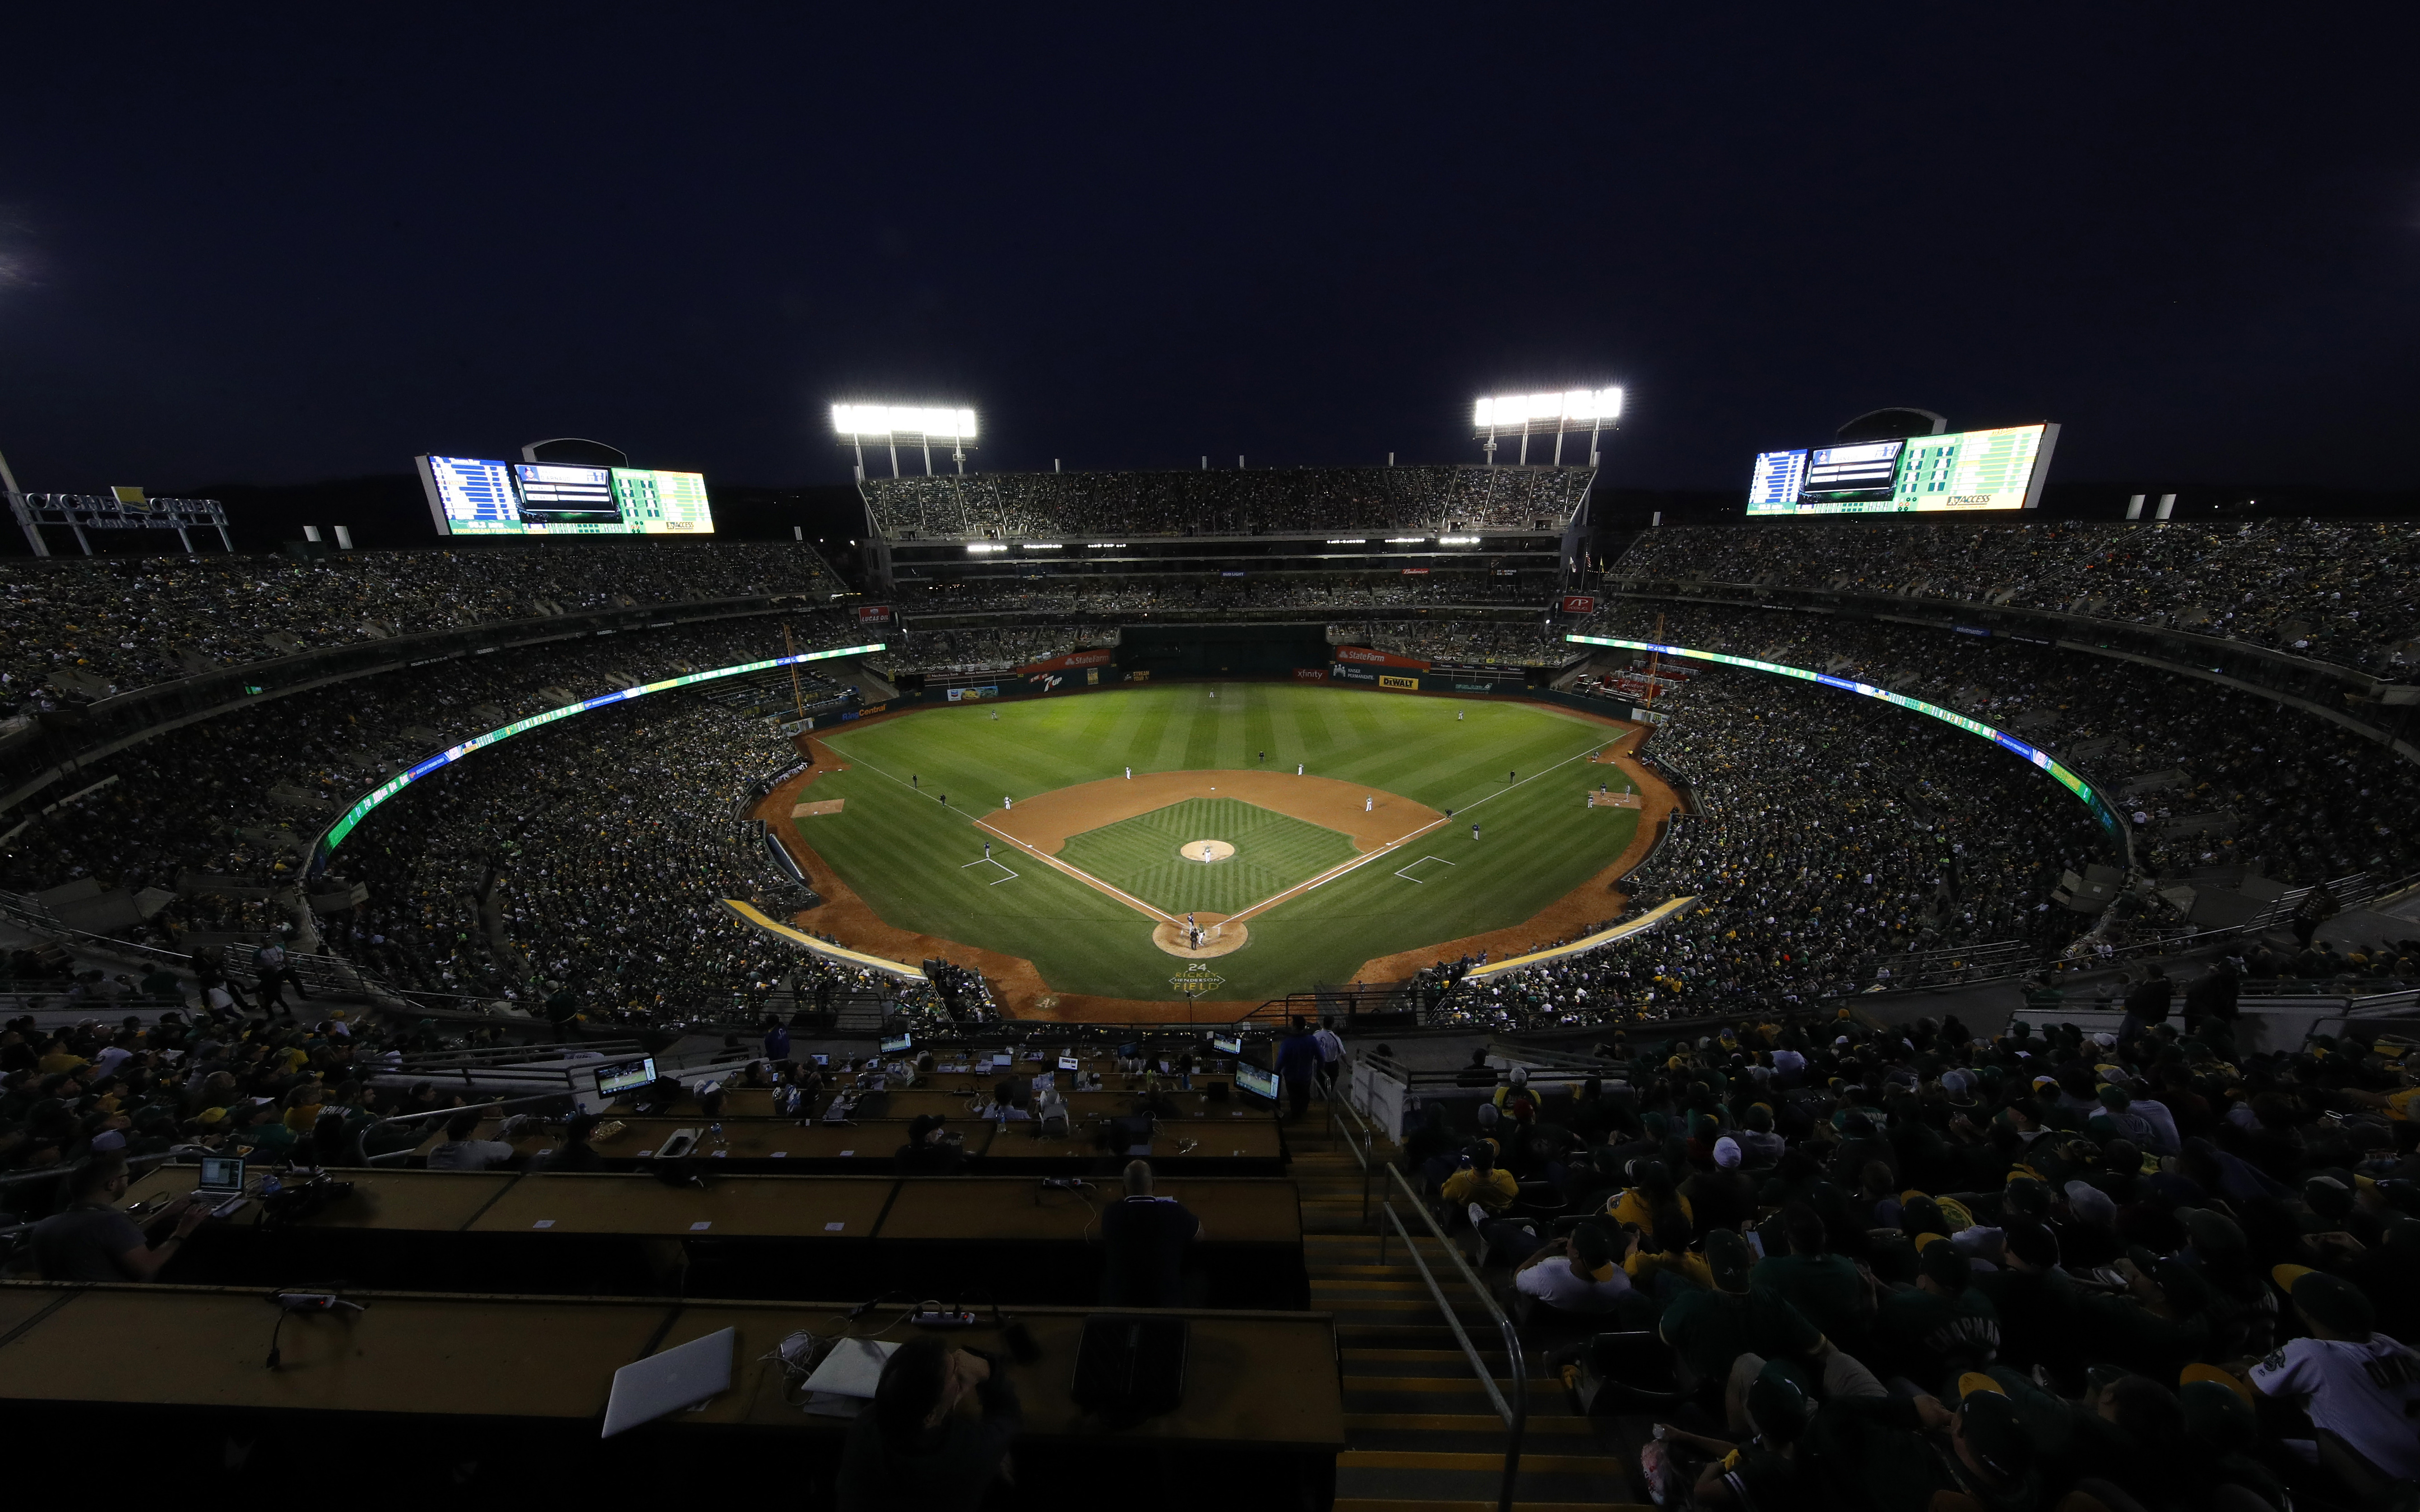 With MLB's Return Delayed, What's Next For A's-Giants Spring Showdowns?